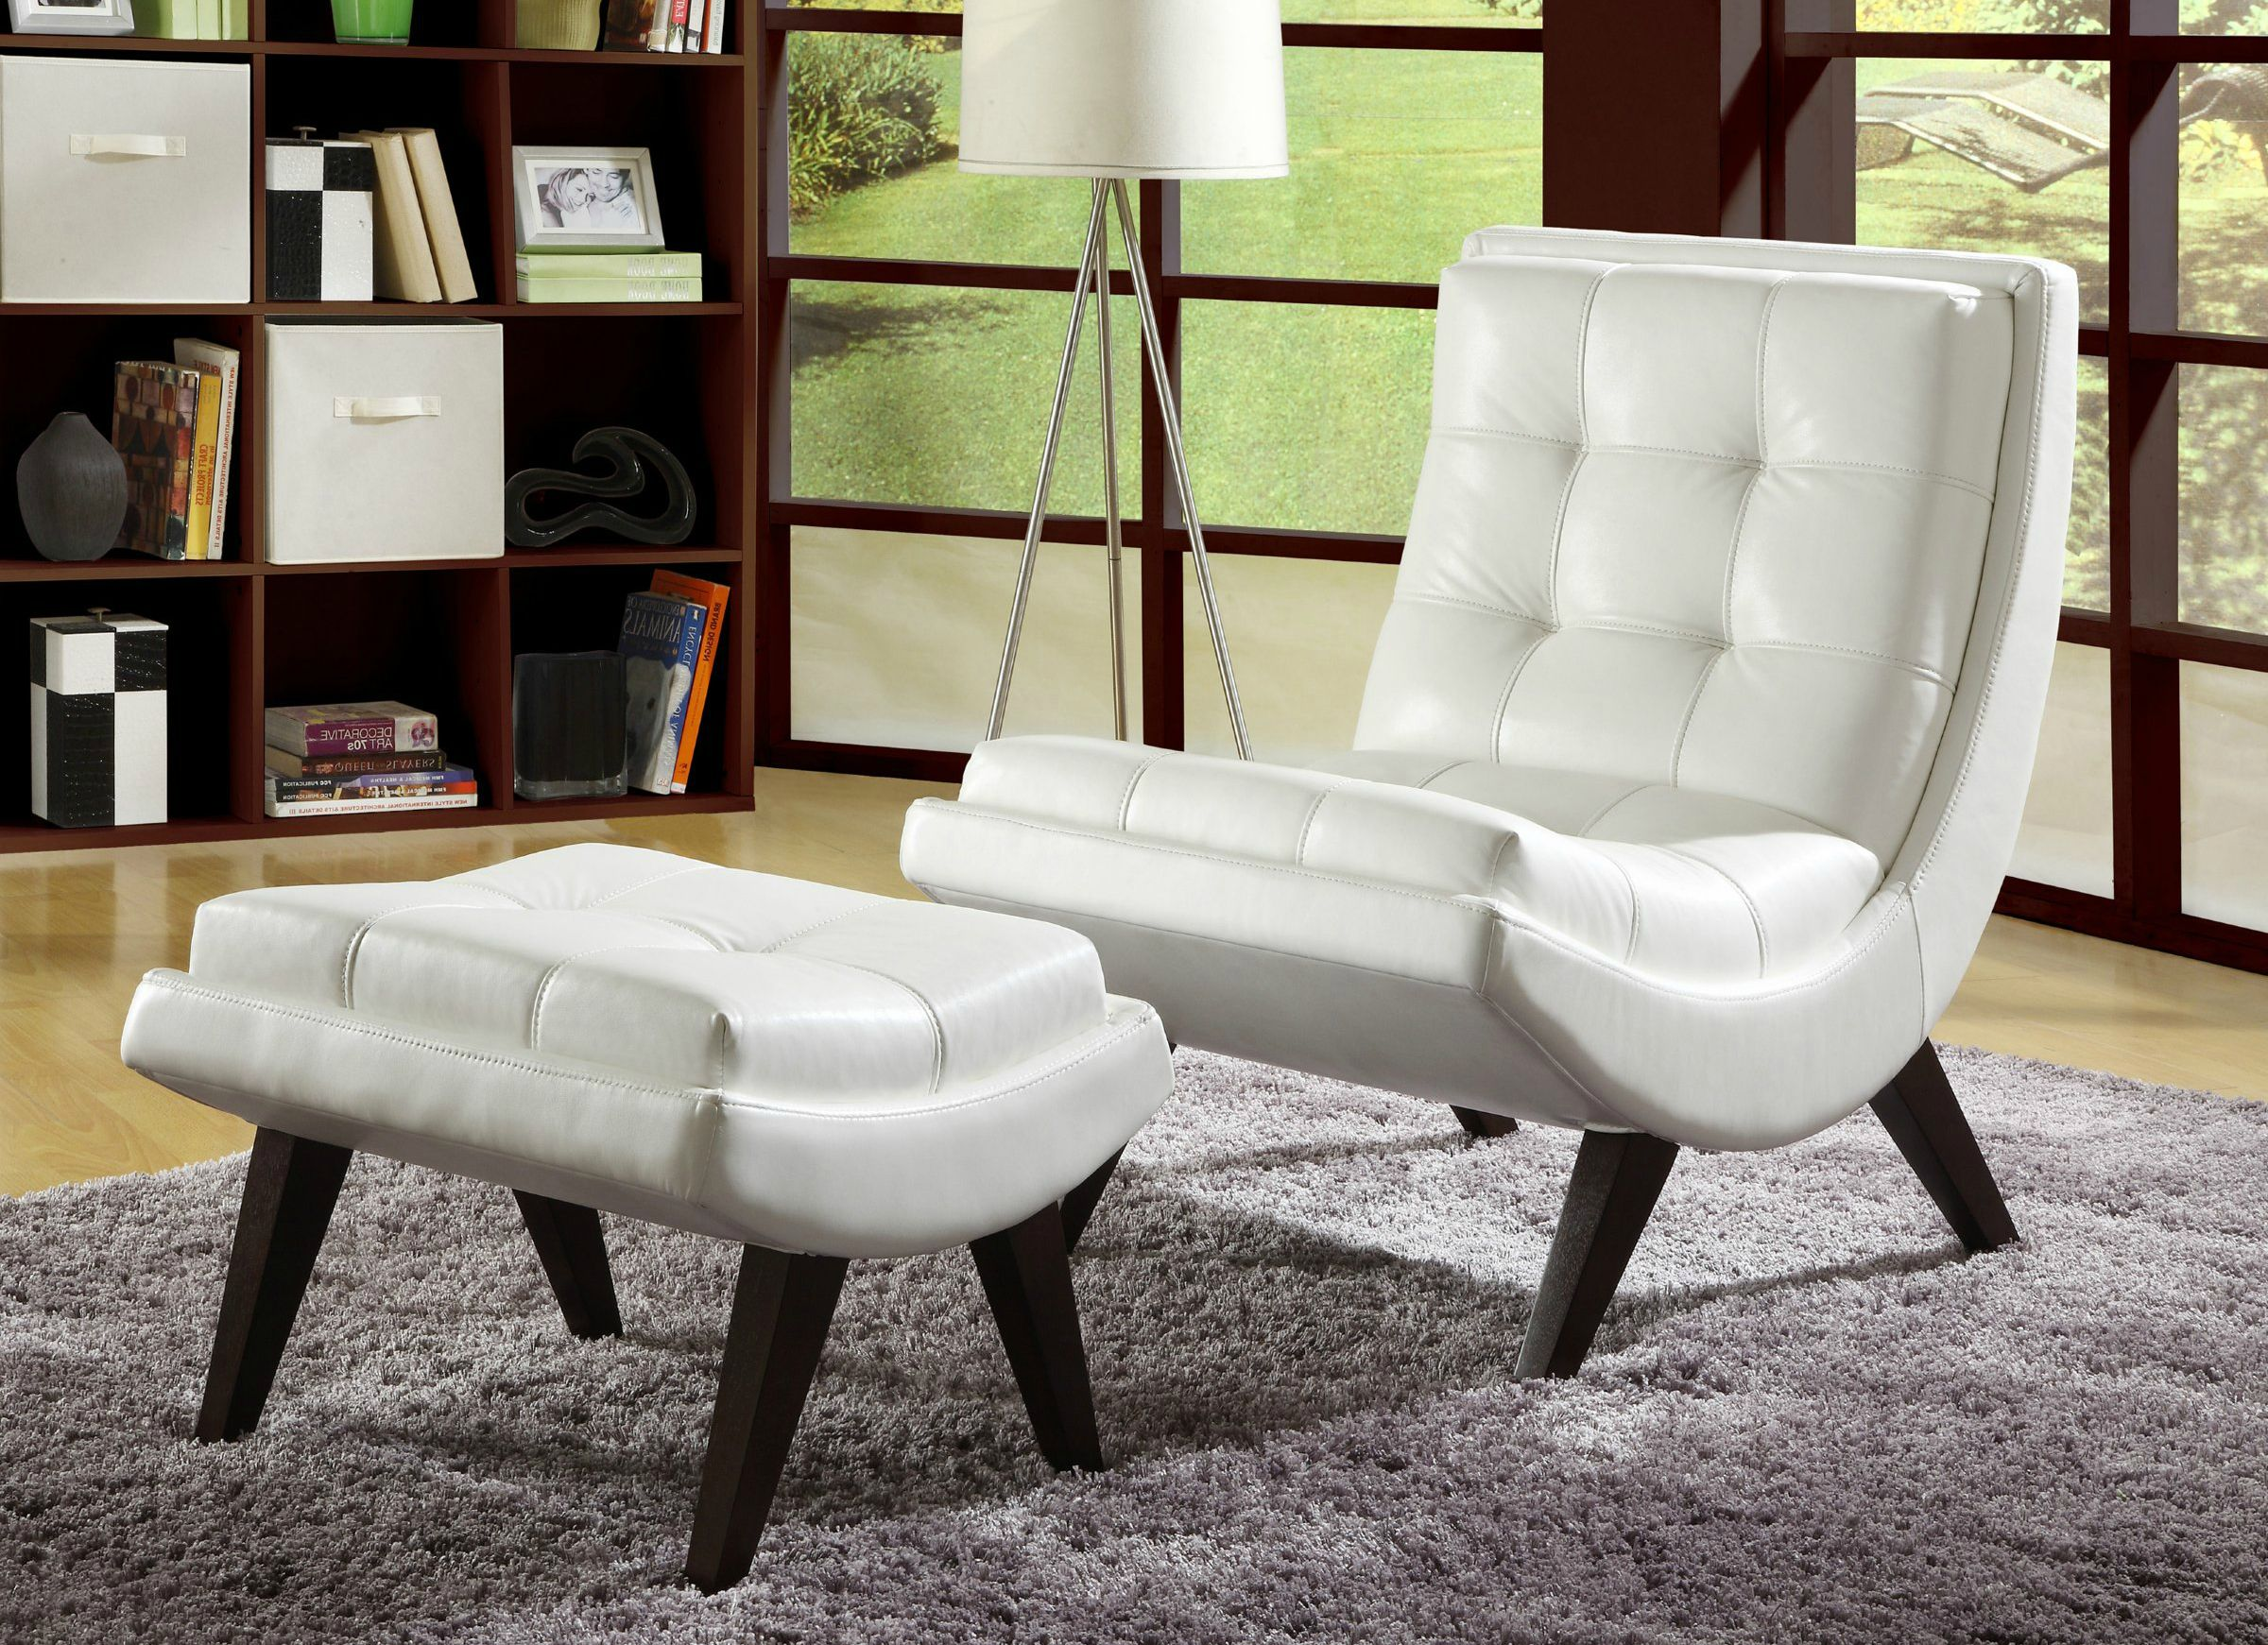 11+ White leather living room chairs ideas